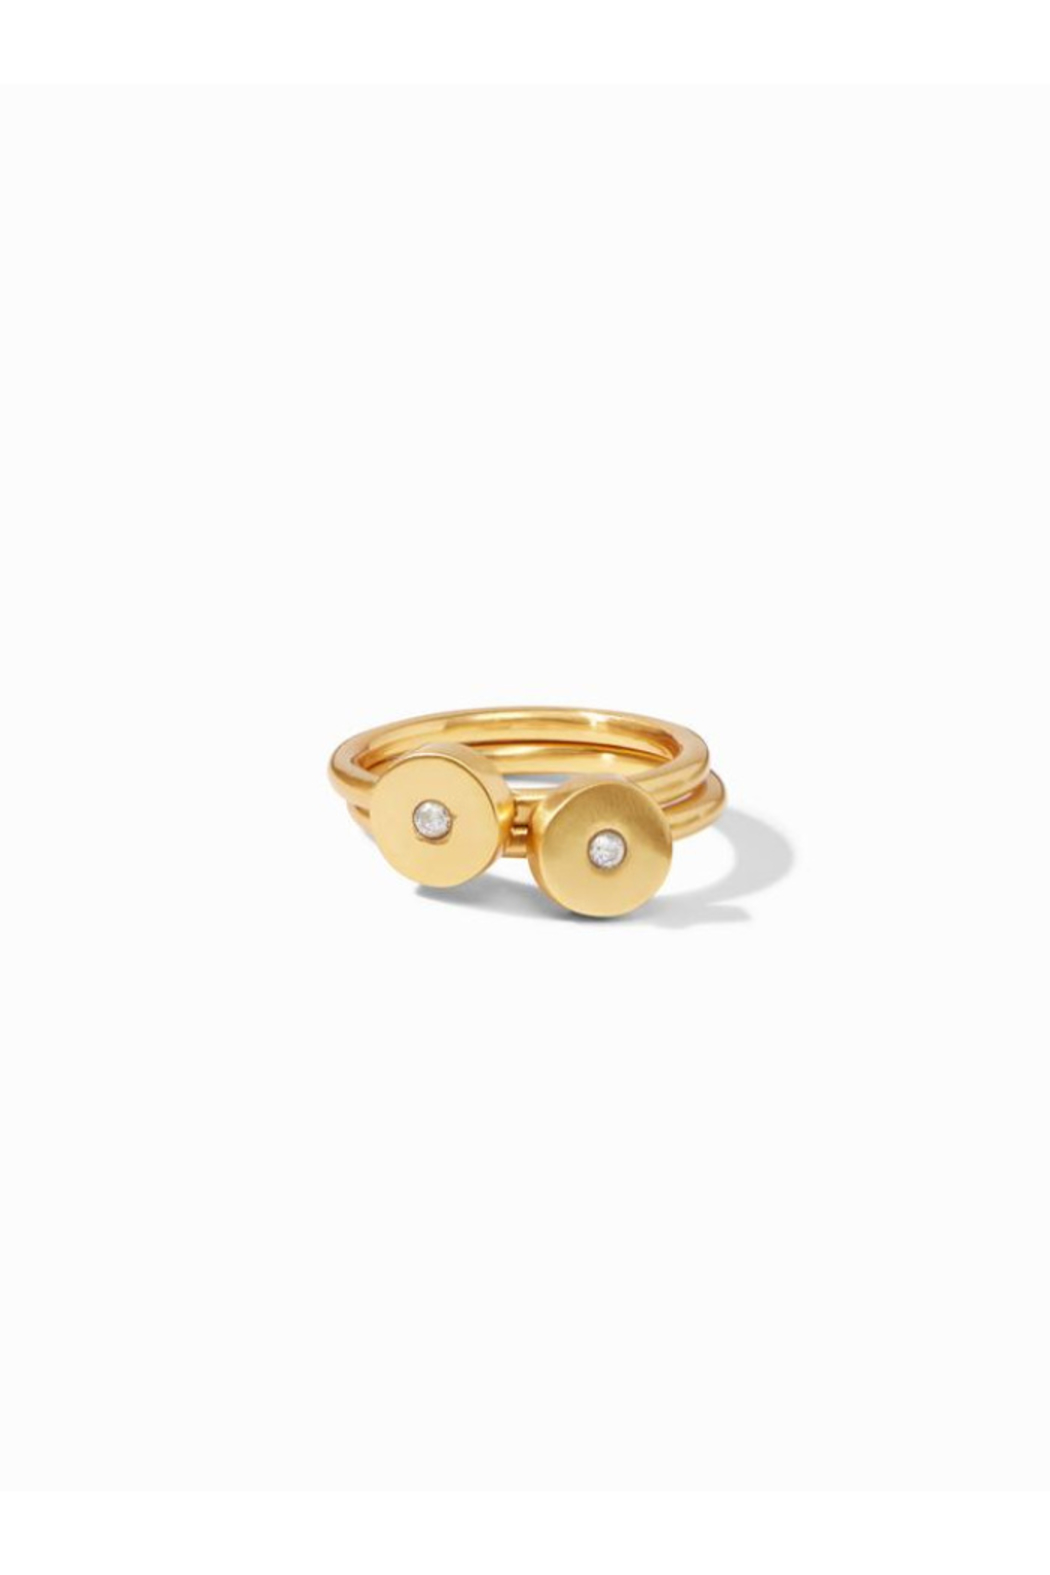 Julie Vos Poppy Stacking Rings Gold-Pearl (Set Of 2) Size 7 - Main Image